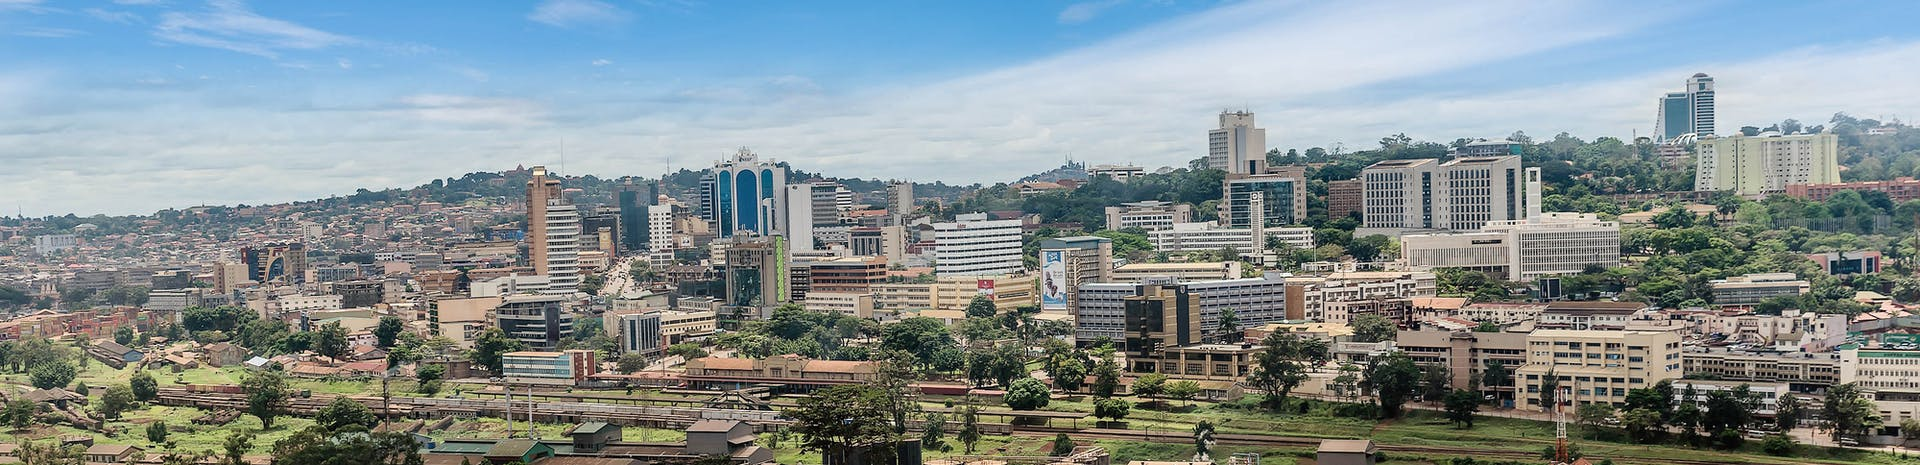 Picture of Kampala